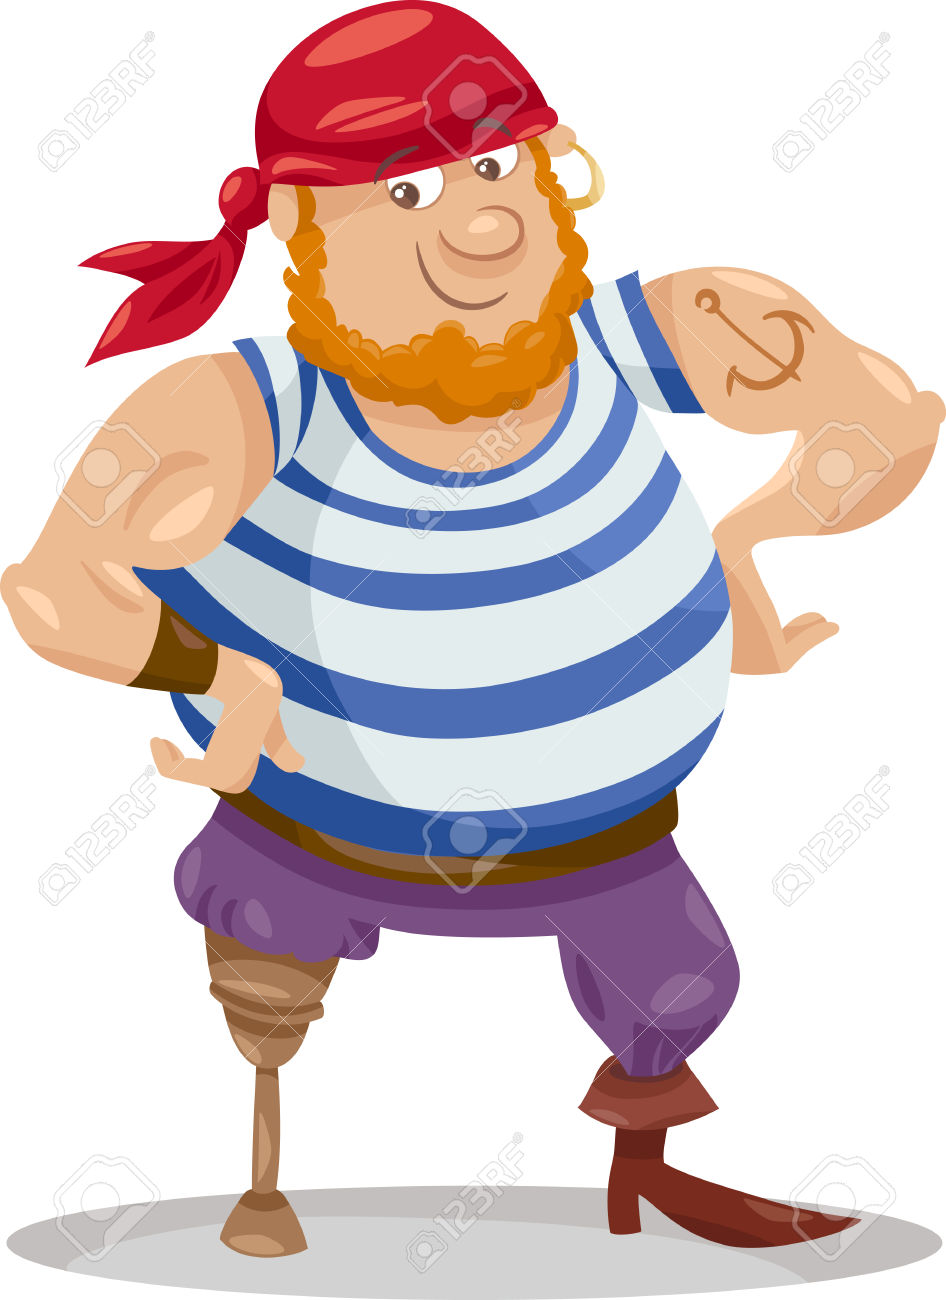 Cartoon Illustration Of Funny Pirate Officer With Peg Leg Royalty.